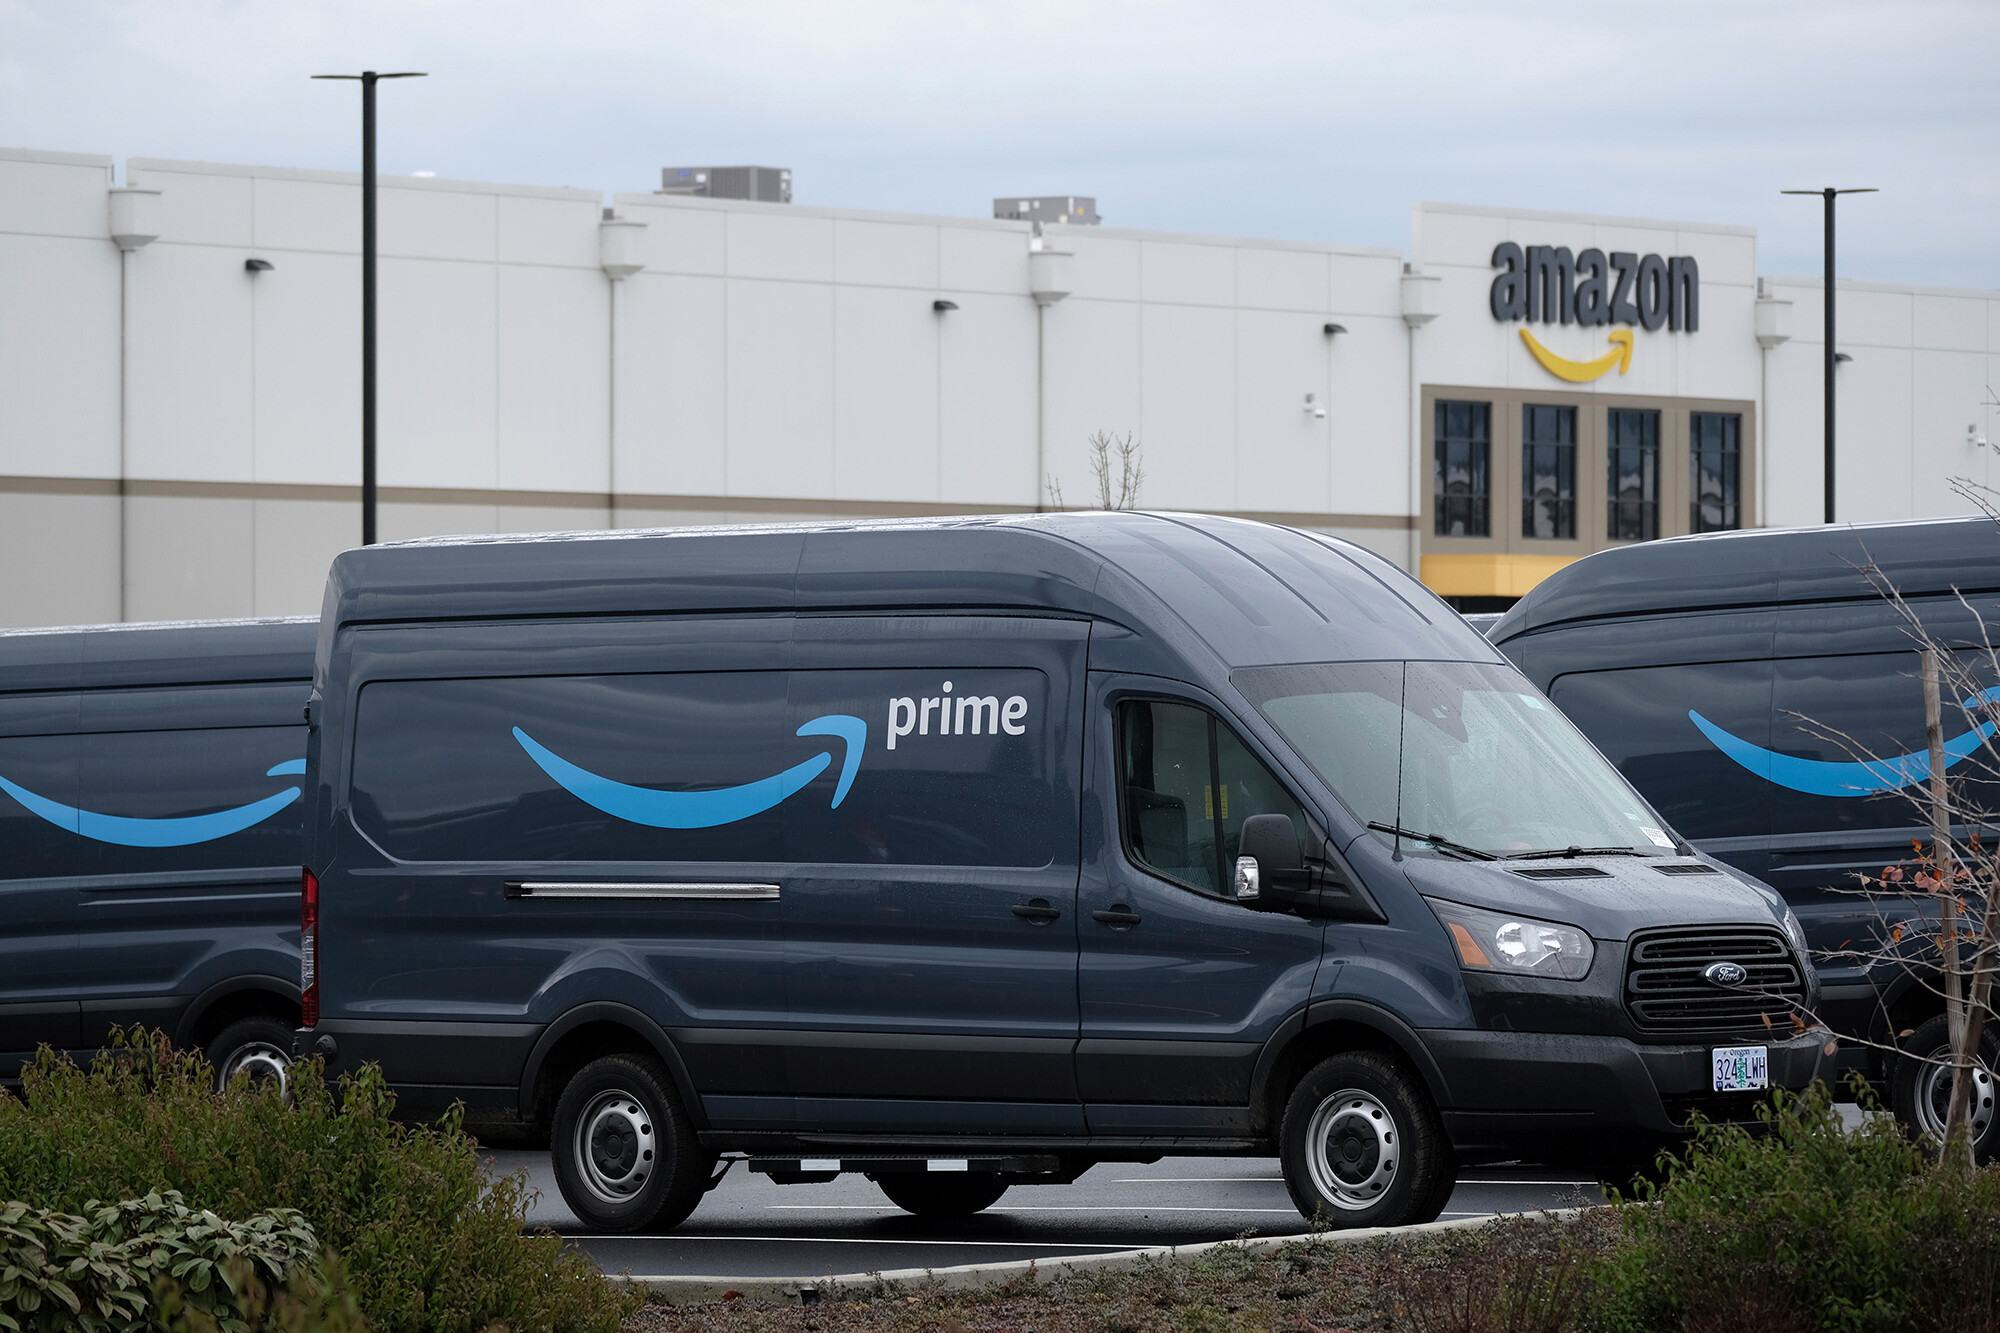 They took a stand against Amazon for their drivers. They say it cost them their businesses